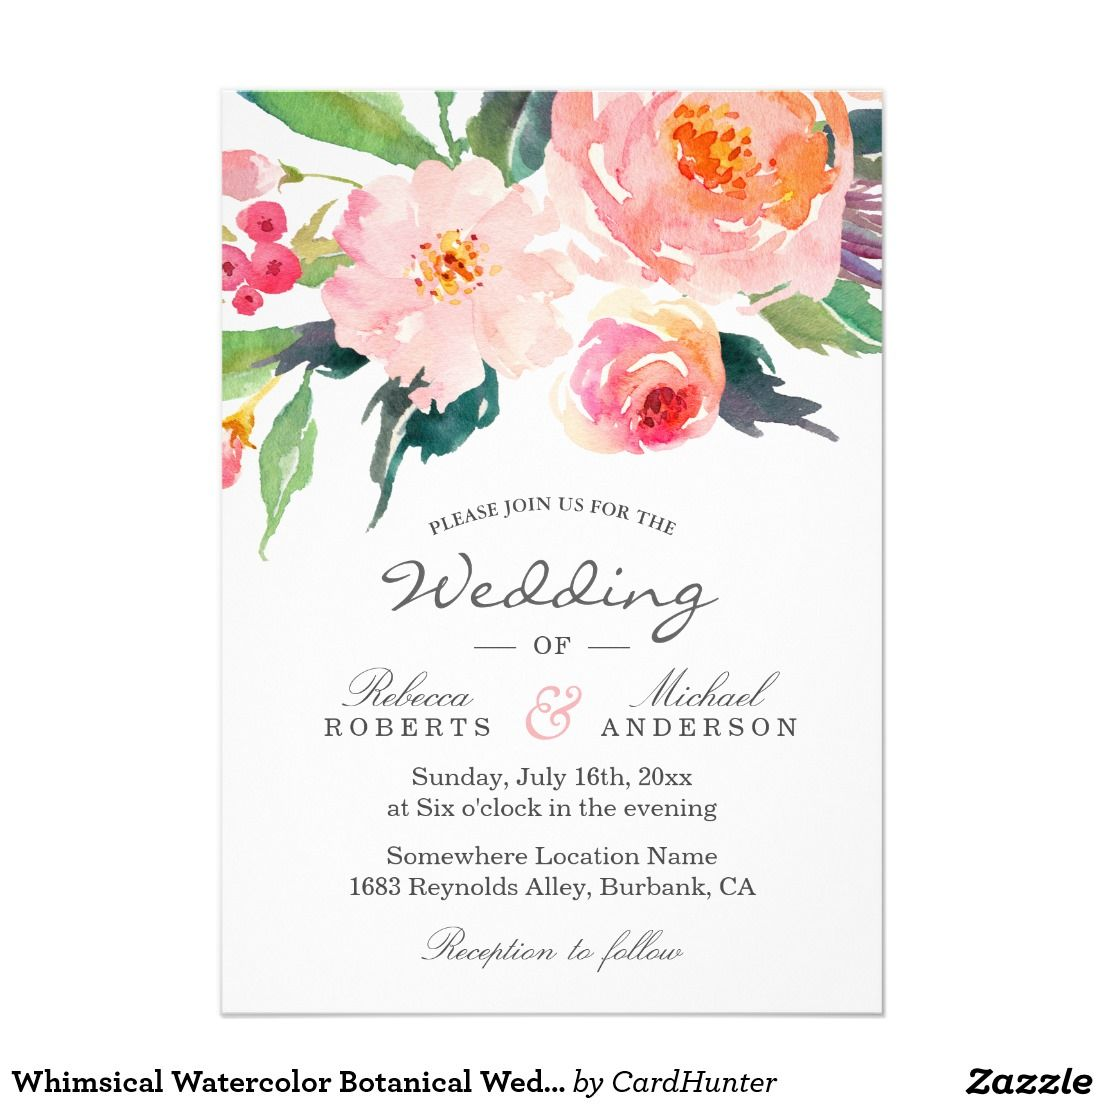 Whimsical Watercolor Botanical Wedding Invitation Botanical